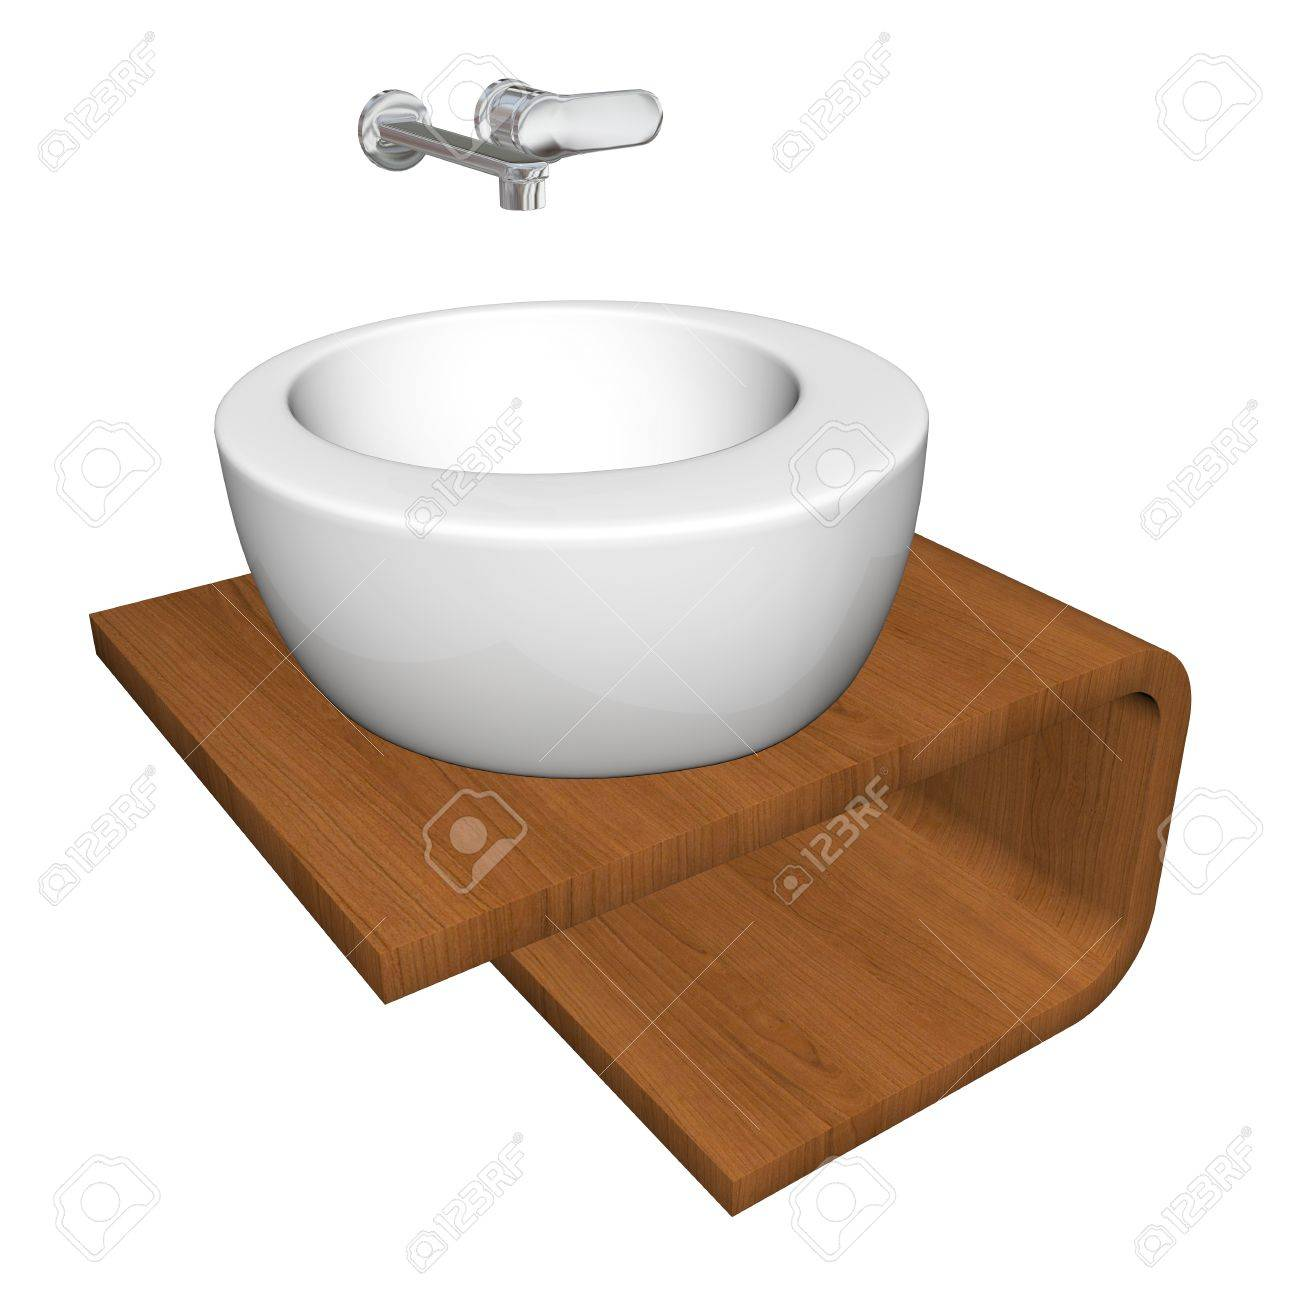 Modern bathroom sink set with ceramic or acrylic wash bowl, chrome fixtures, and wooden base, 3d illustration, isolated against a white background Stock Illustration - 10695685